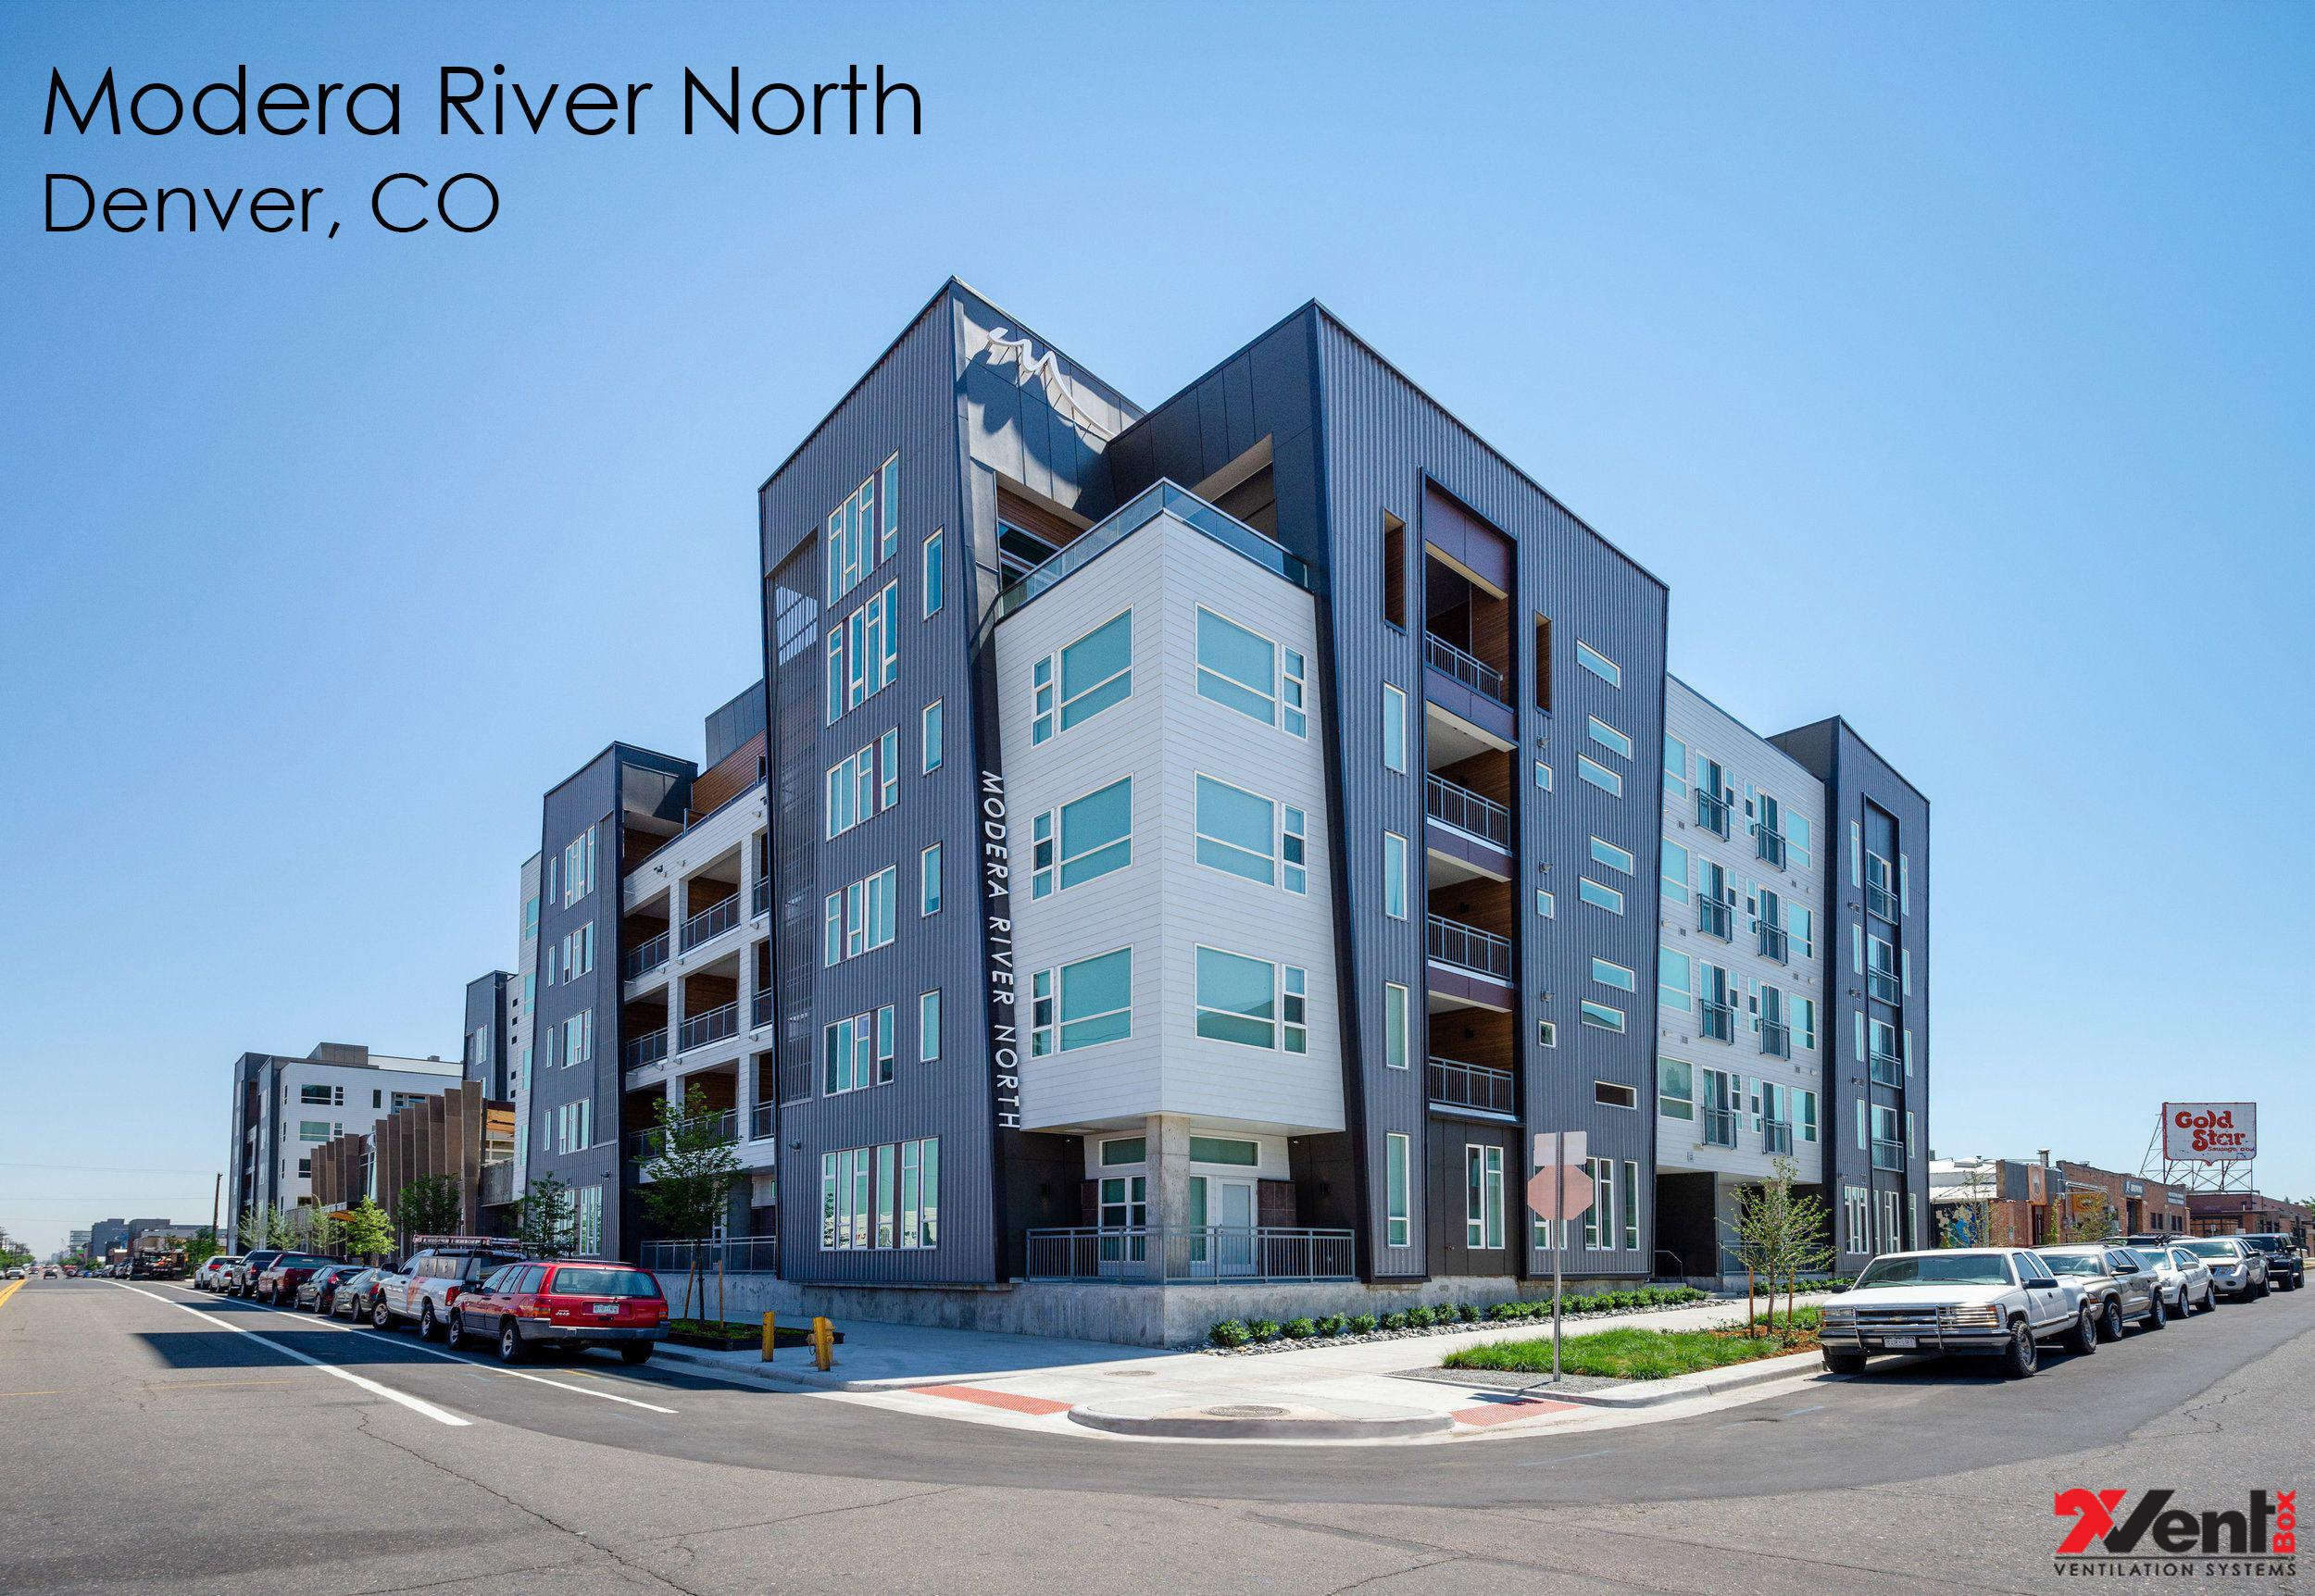 Modera River North